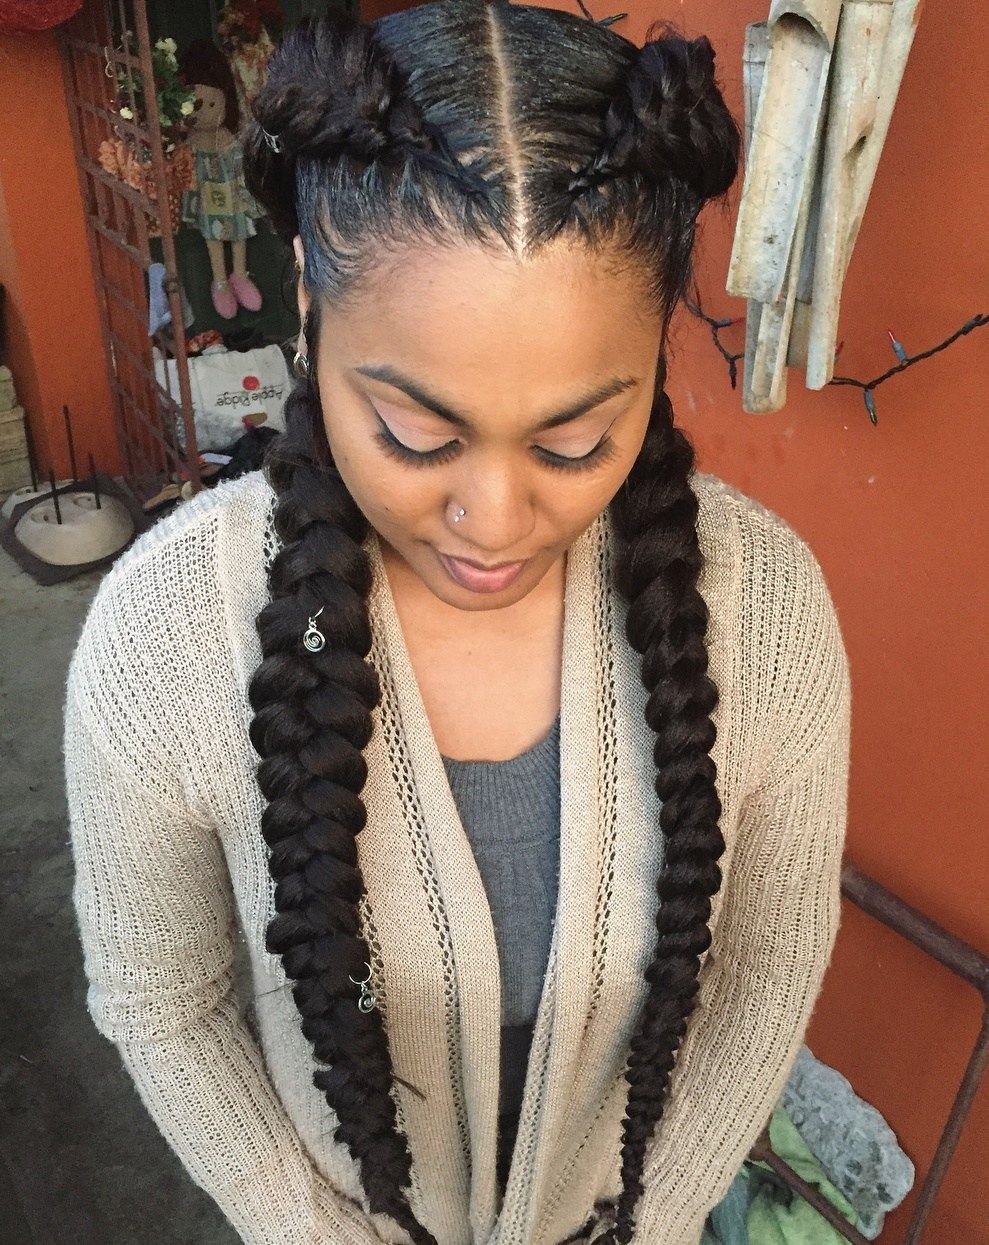 60 Easy And Showy Protective Hairstyles For Natural Hair Two Braid Hairstyles Braided Hairstyles Natural Hair Styles